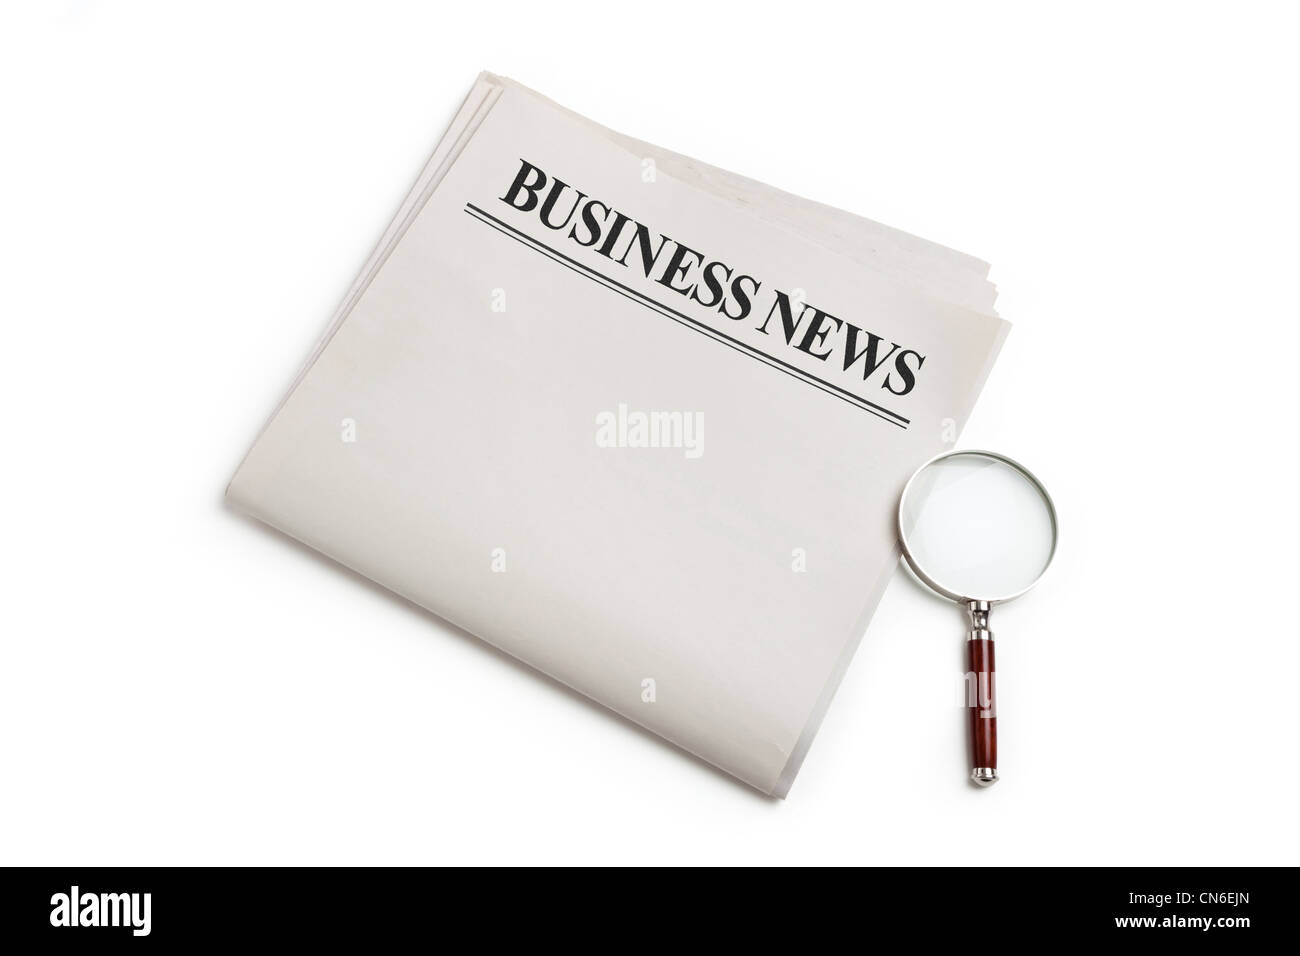 Business News Blank Newspaper With White Background Stock Photo